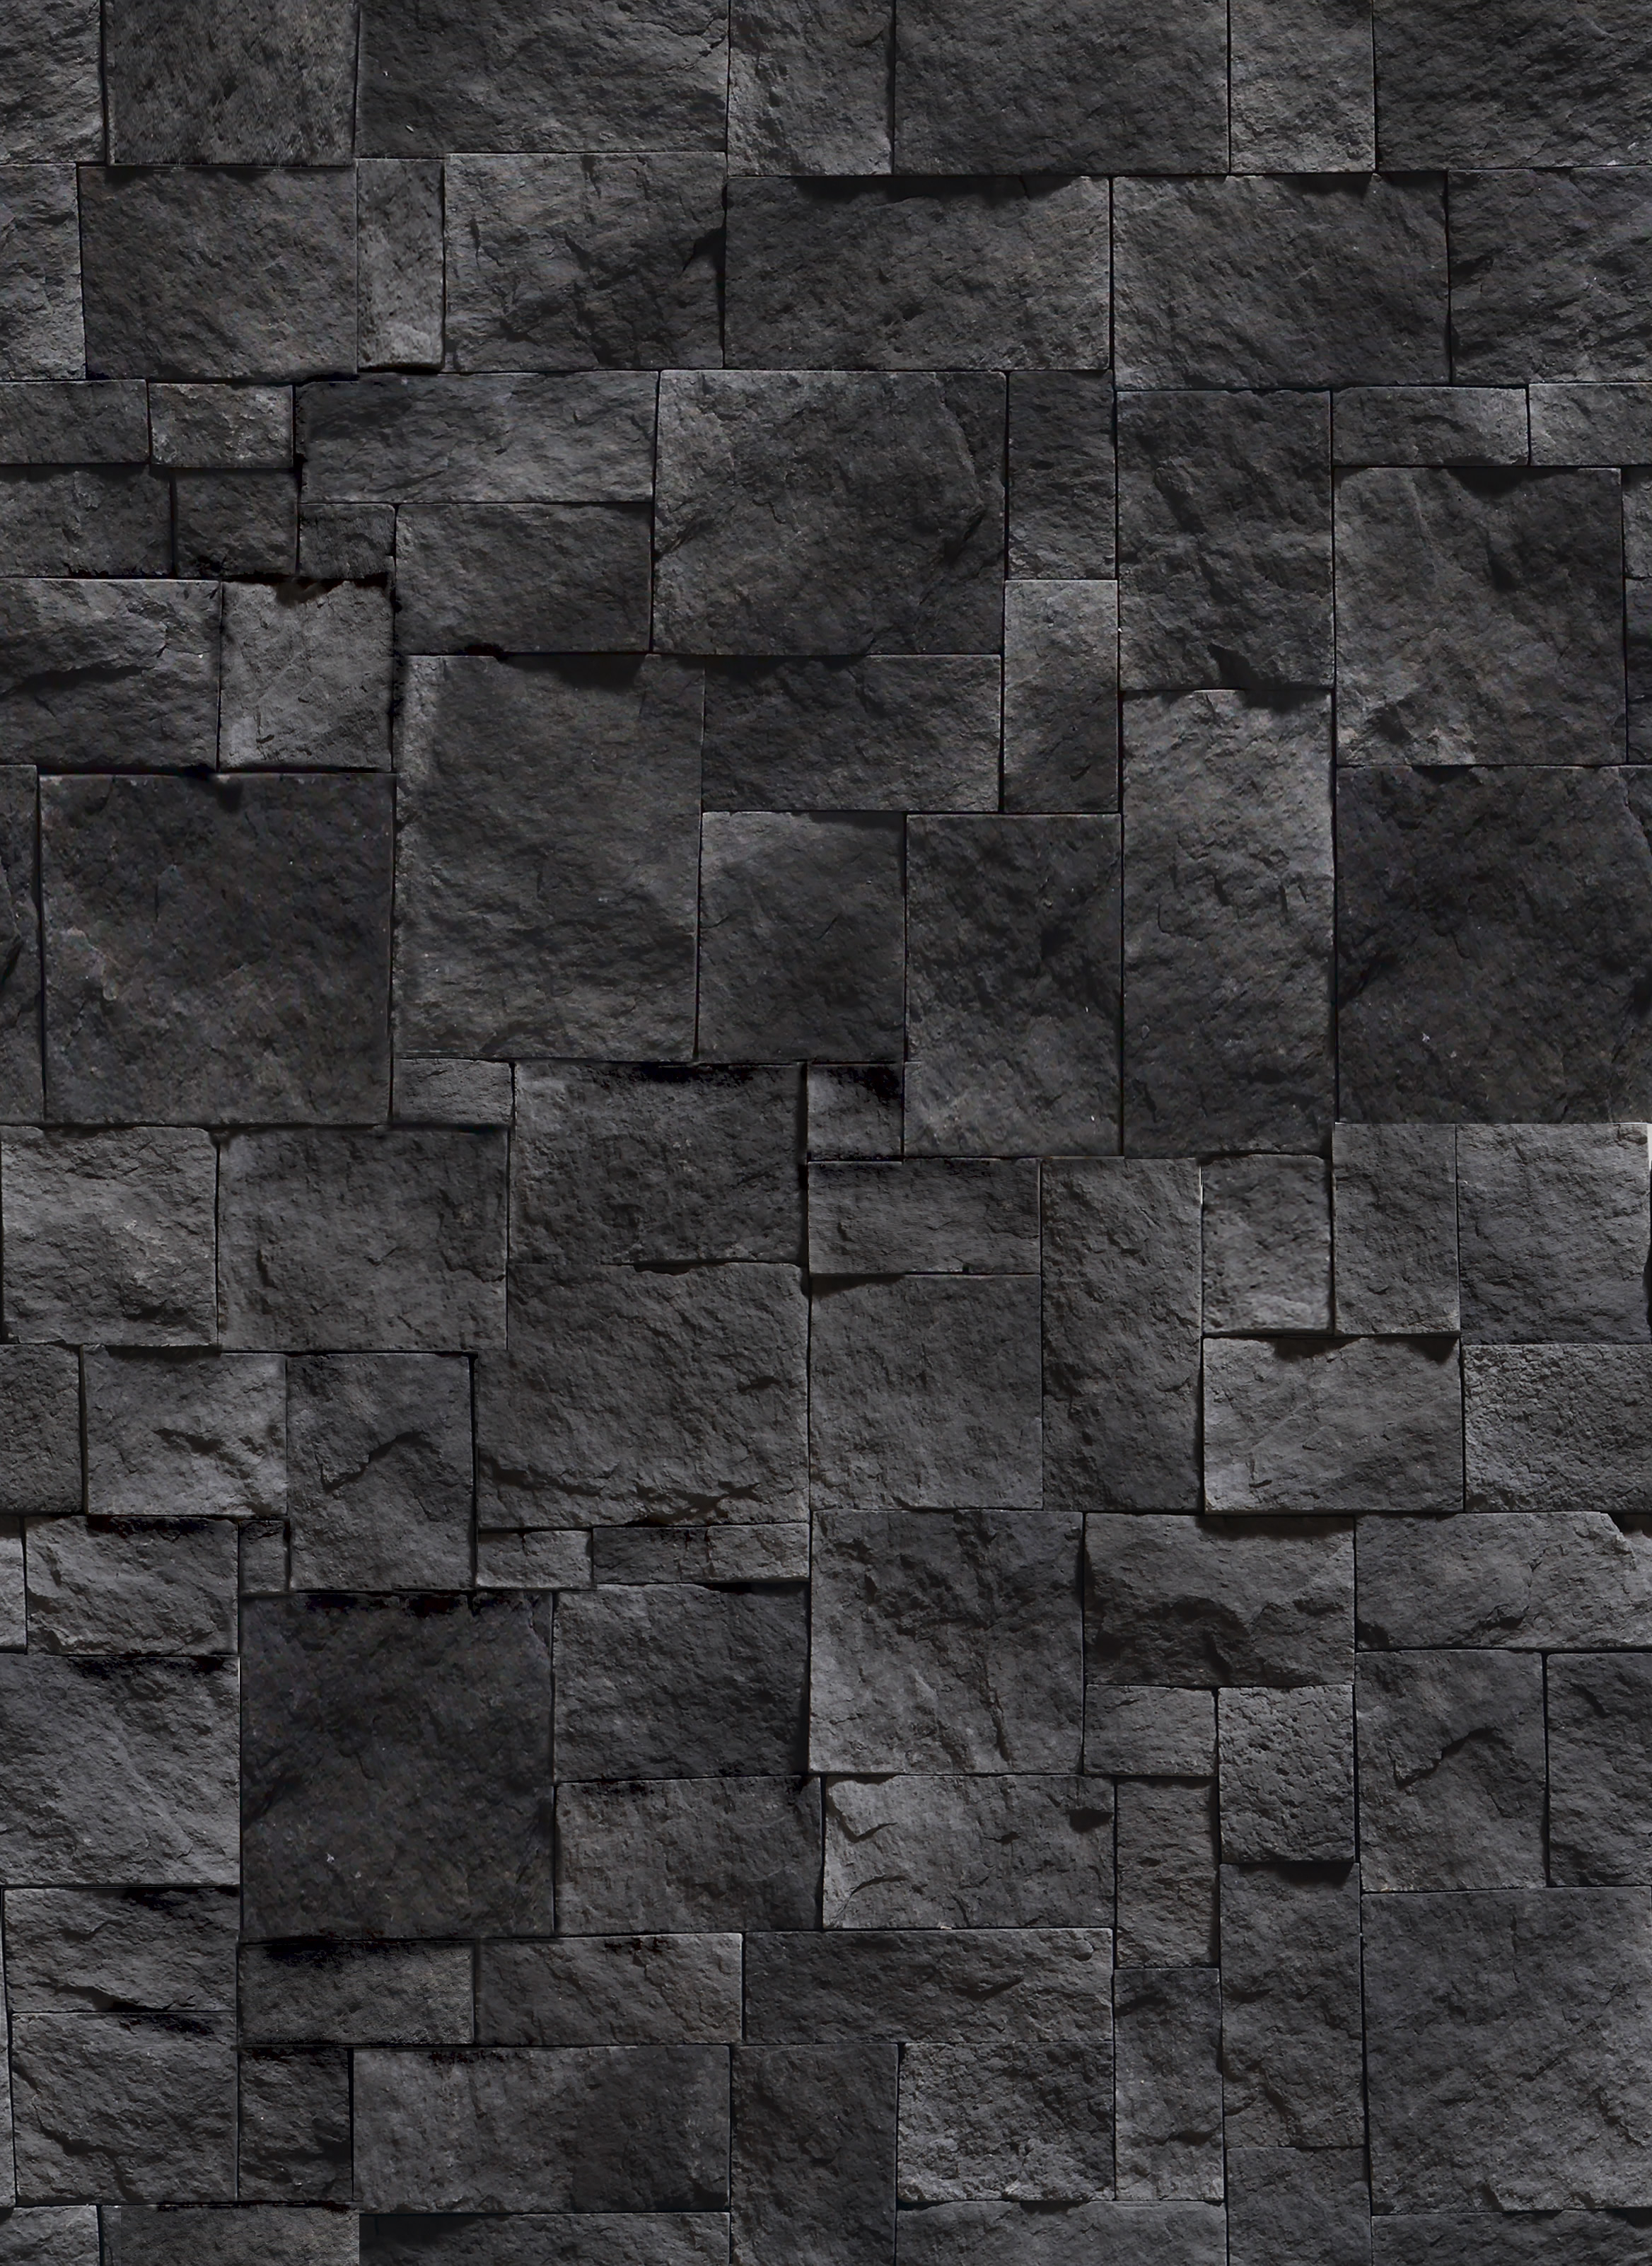 black stone download photo background texture stone texture. Black Bedroom Furniture Sets. Home Design Ideas